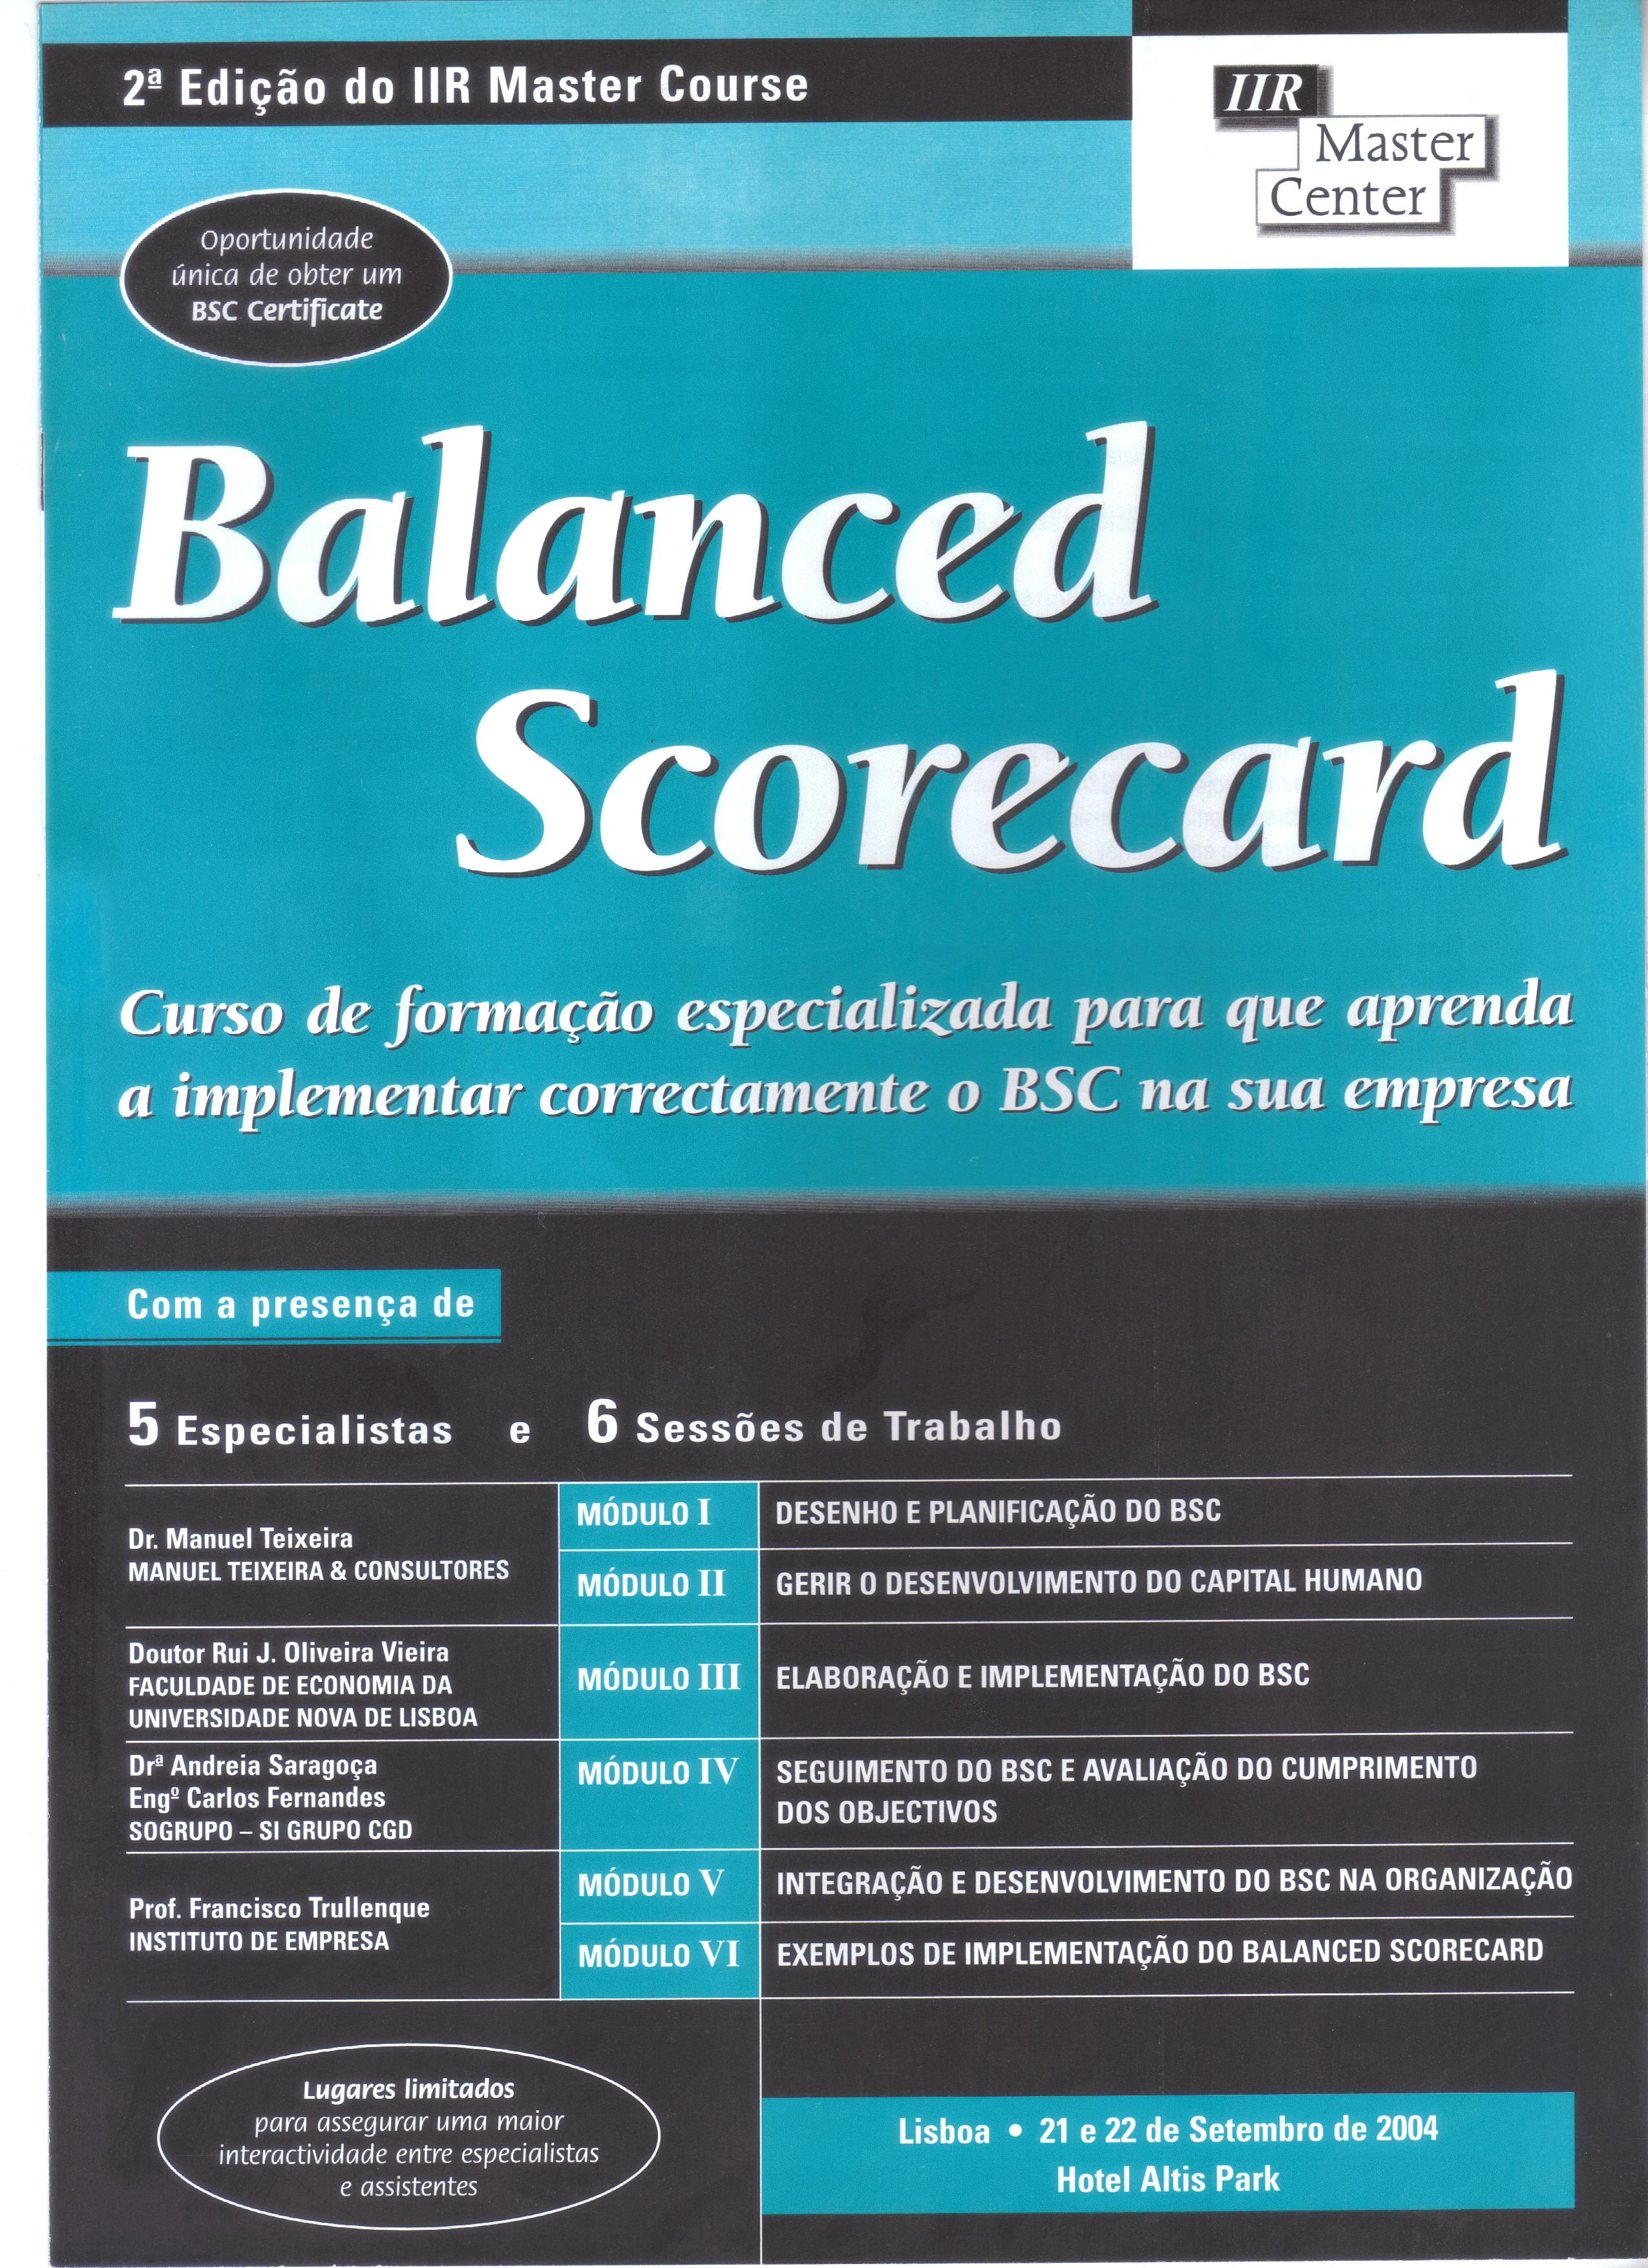 bsc-master-course